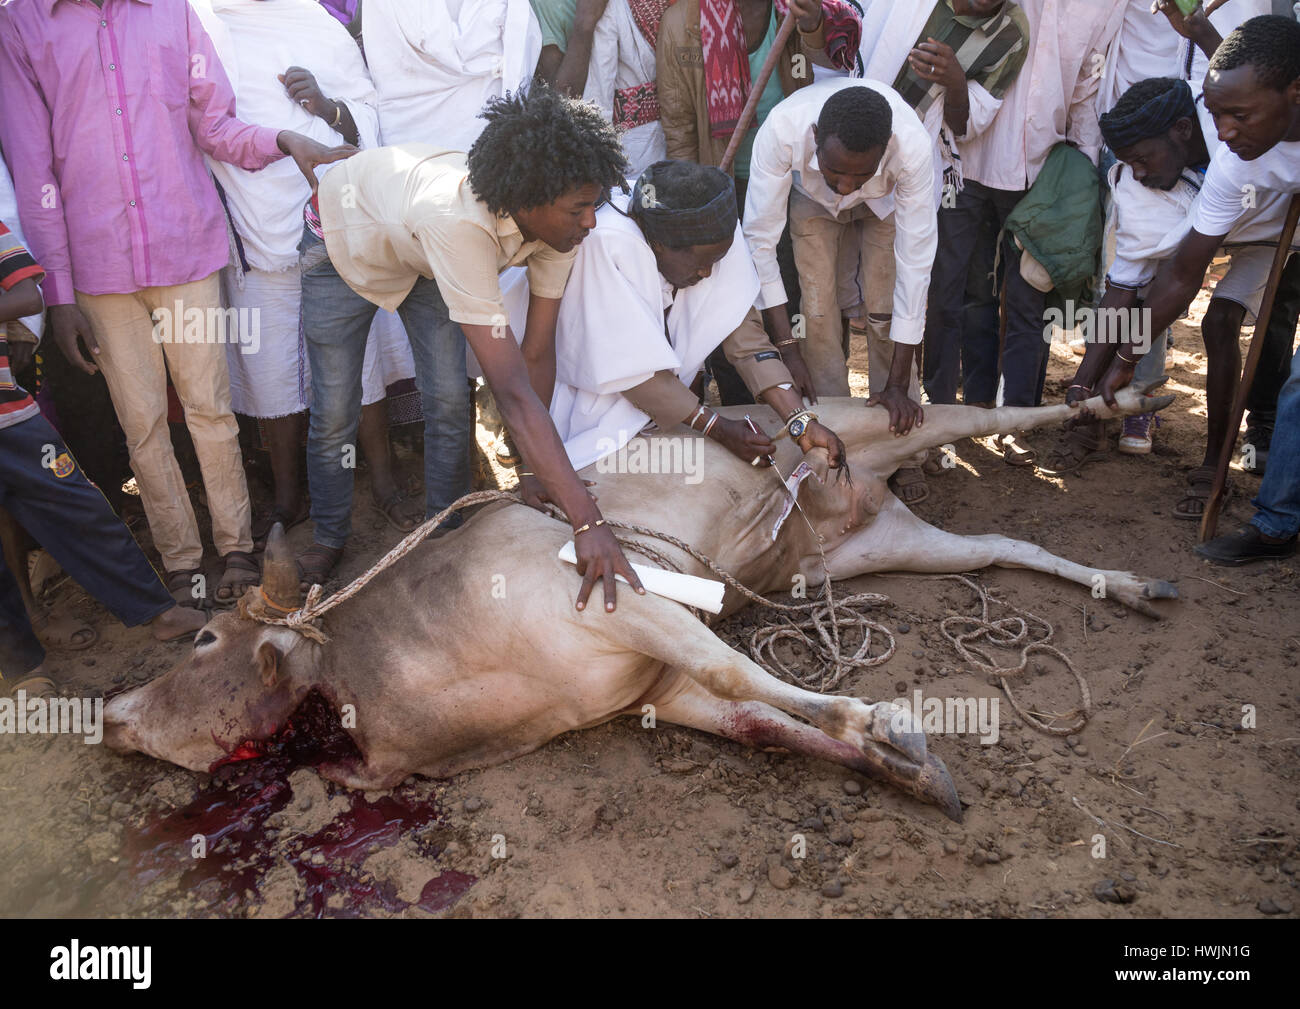 Kura Jarso cutting the genitals of a bull during the Gada system ceremony in Borana tribe, Oromia, Yabelo, Ethiopia - Stock Image